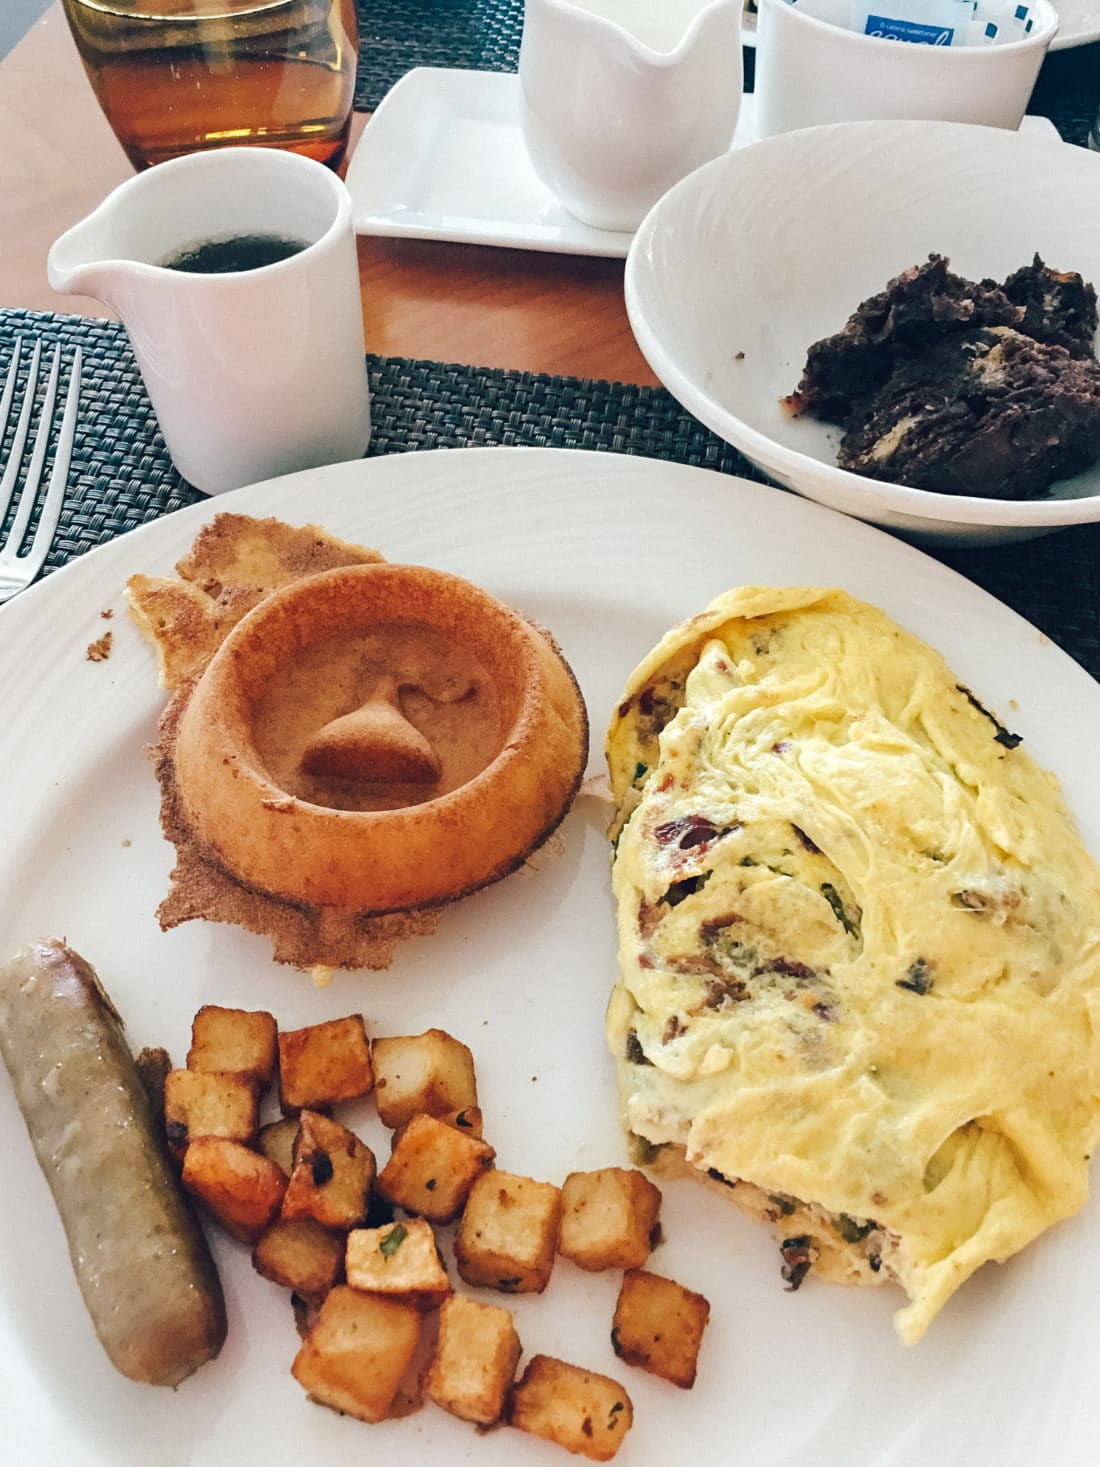 The Circular Breakfast Buffet Plate.This exquisite hotel is the original Hershey Hotel that Milton M. Hershey envisioned his self. Through the years the hotel has grown and offered many new amenities for it's guests to enjoy.